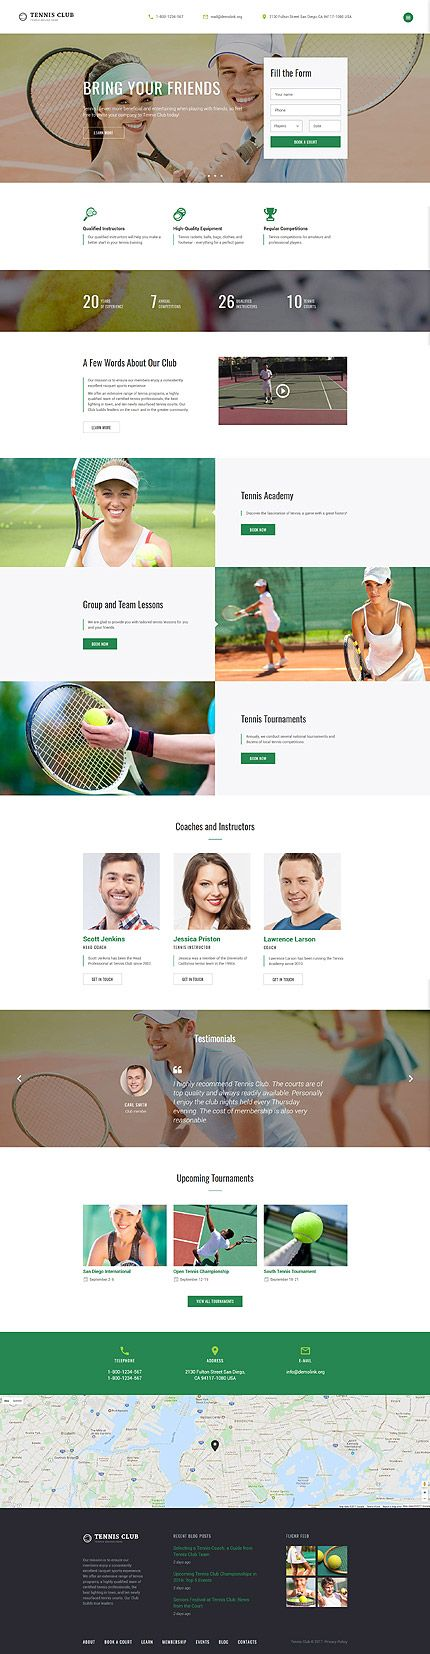 Sport website inspirations at your coffee break? Browse for more Bootstrap #templates! // Regular price: $75 // Sources available: .HTML,  .PSD #Sport #Tenis #LastAdded #Bootstrap #shop #store #tennis #sport #ball #court #shoes #club #bags #accessories #fitness #apparel #racket #strings #string #racquet #grips #braces